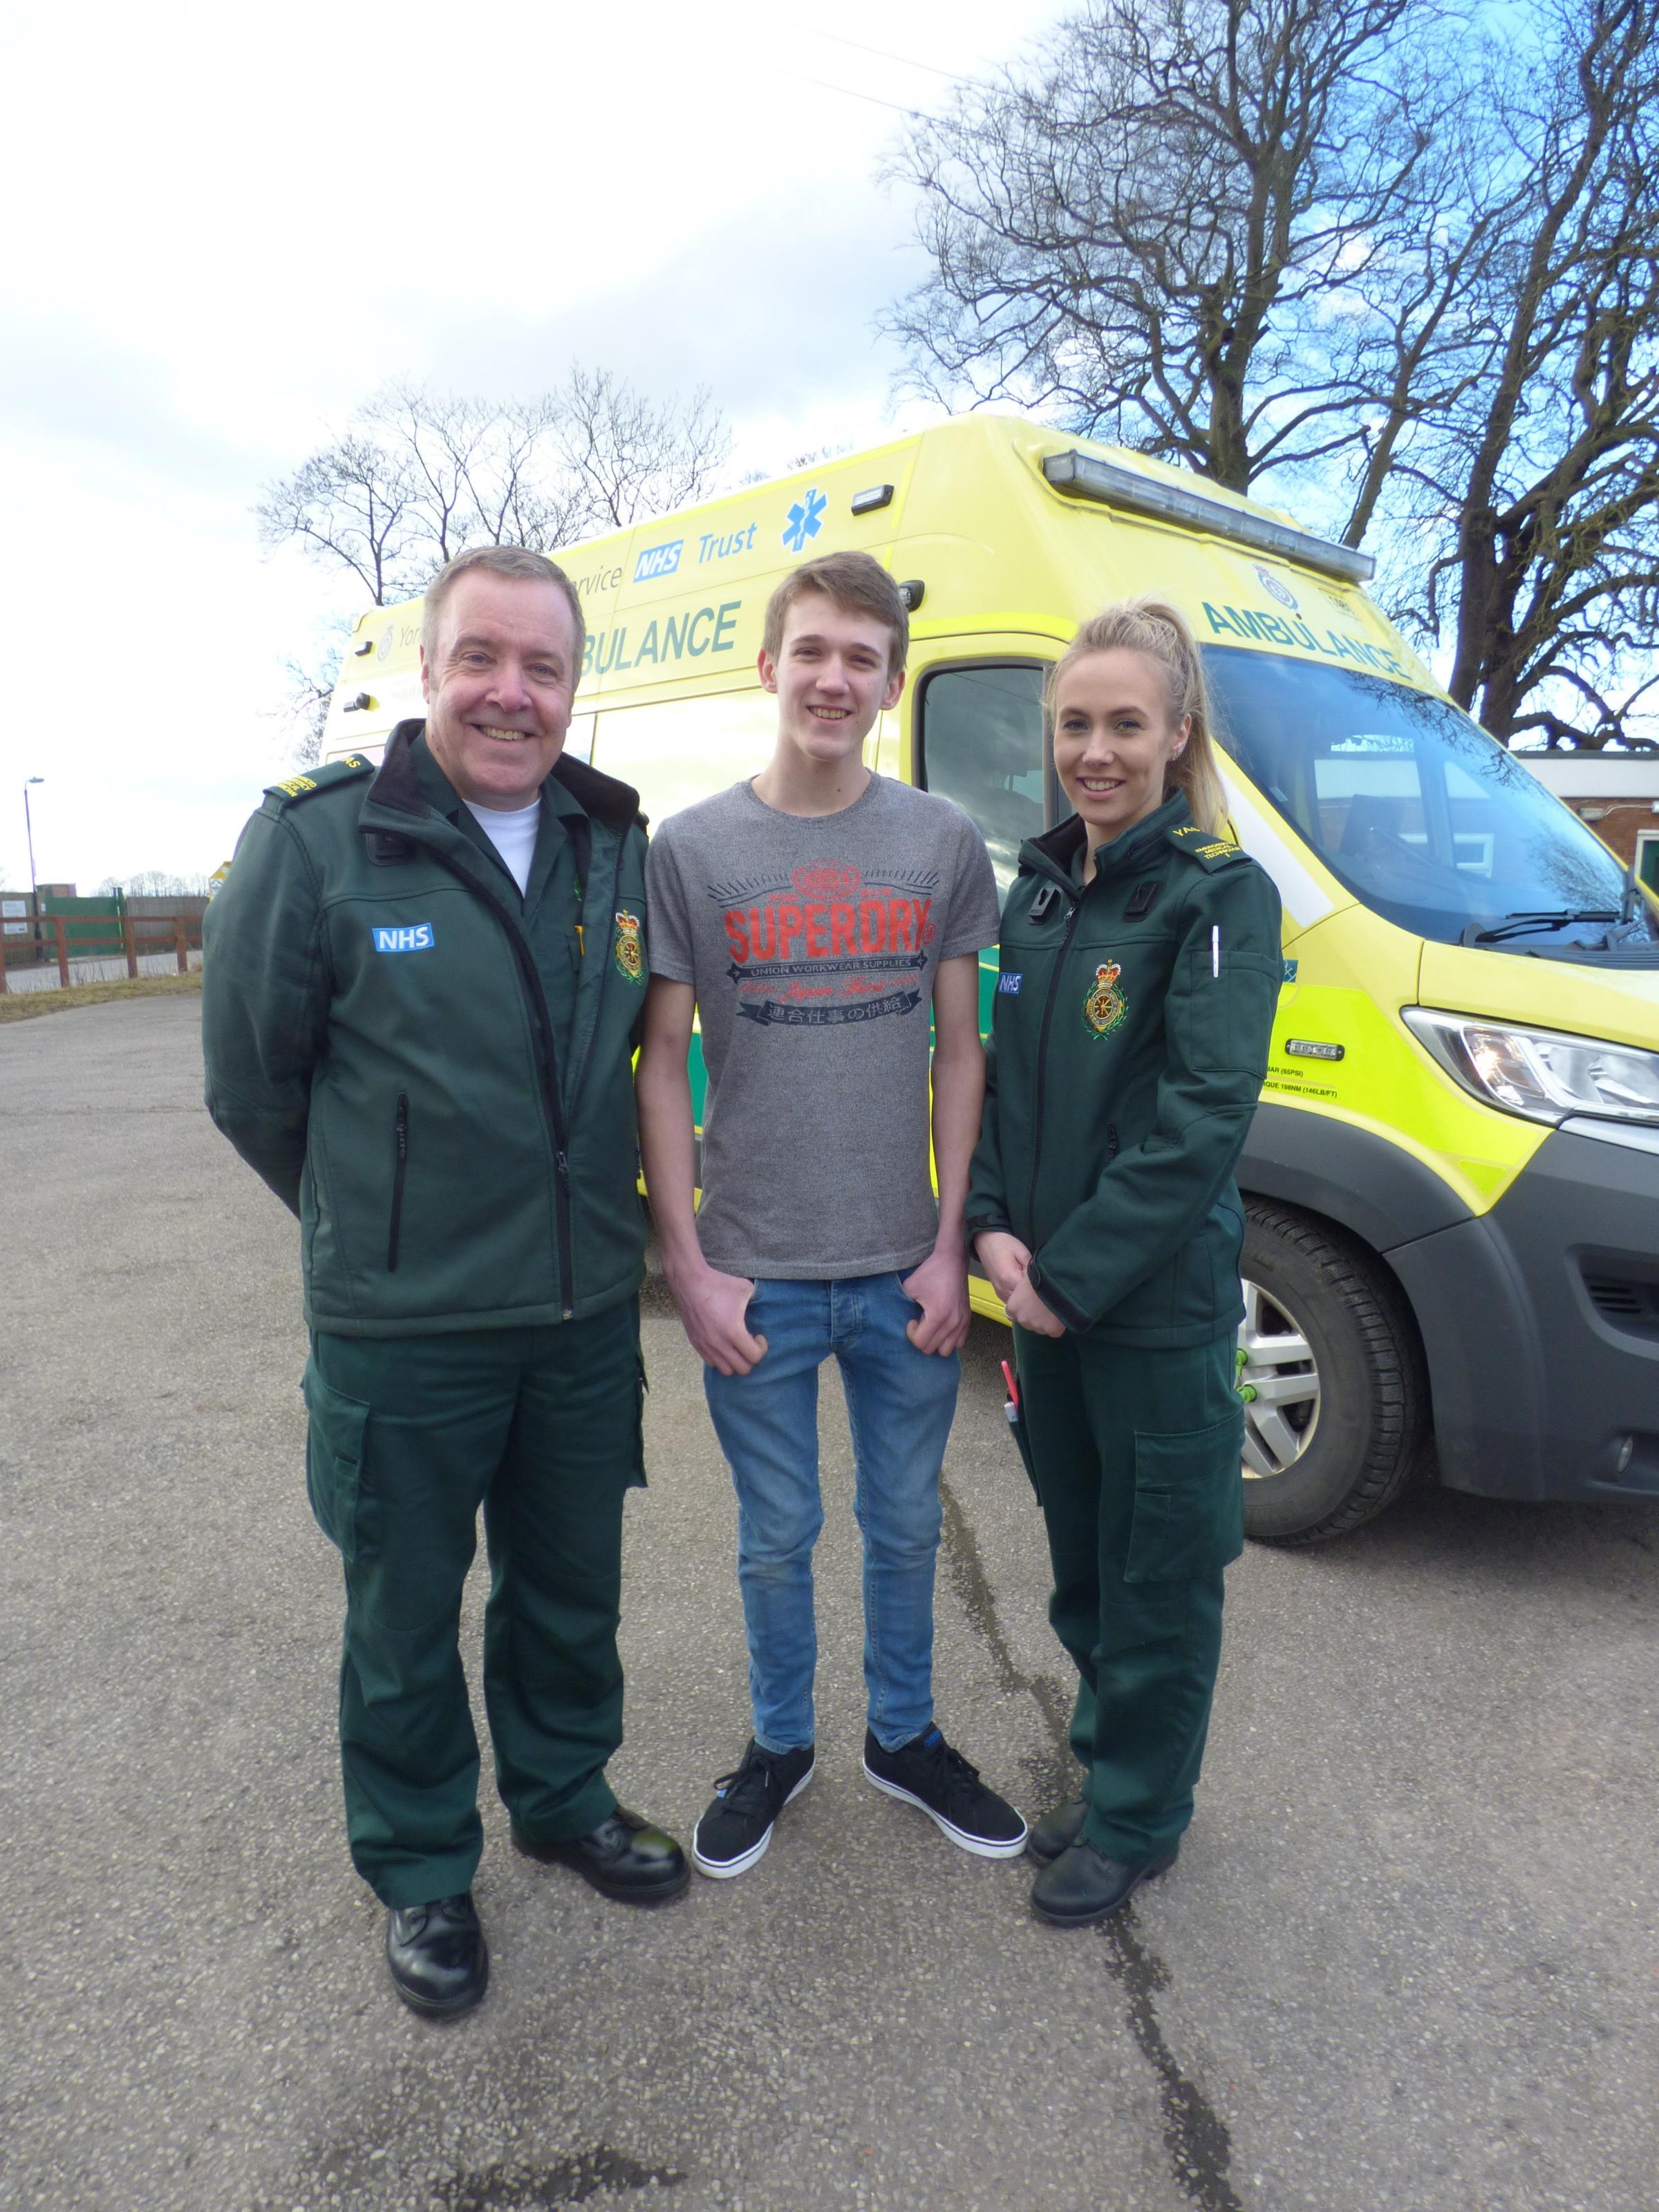 Advanced Emergency Medical Technician Dave Gardner, Conor Rowlands and Emergency Medical Technician Hannah Duffield